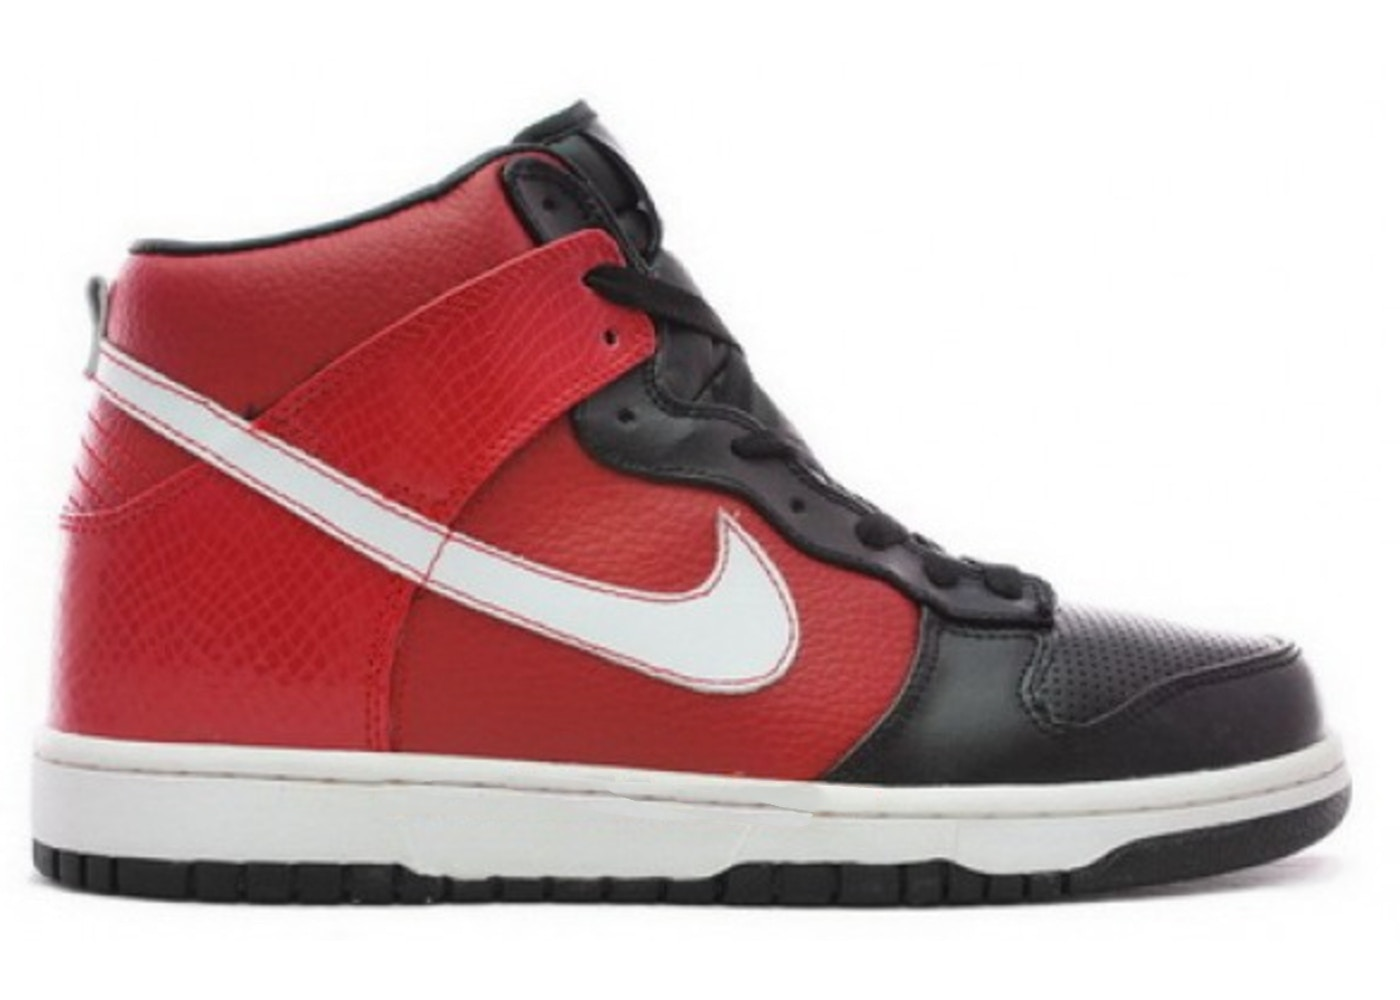 Nike Dunk High Supreme Varsity Red Sneakers (Varsity Red/White-Black)